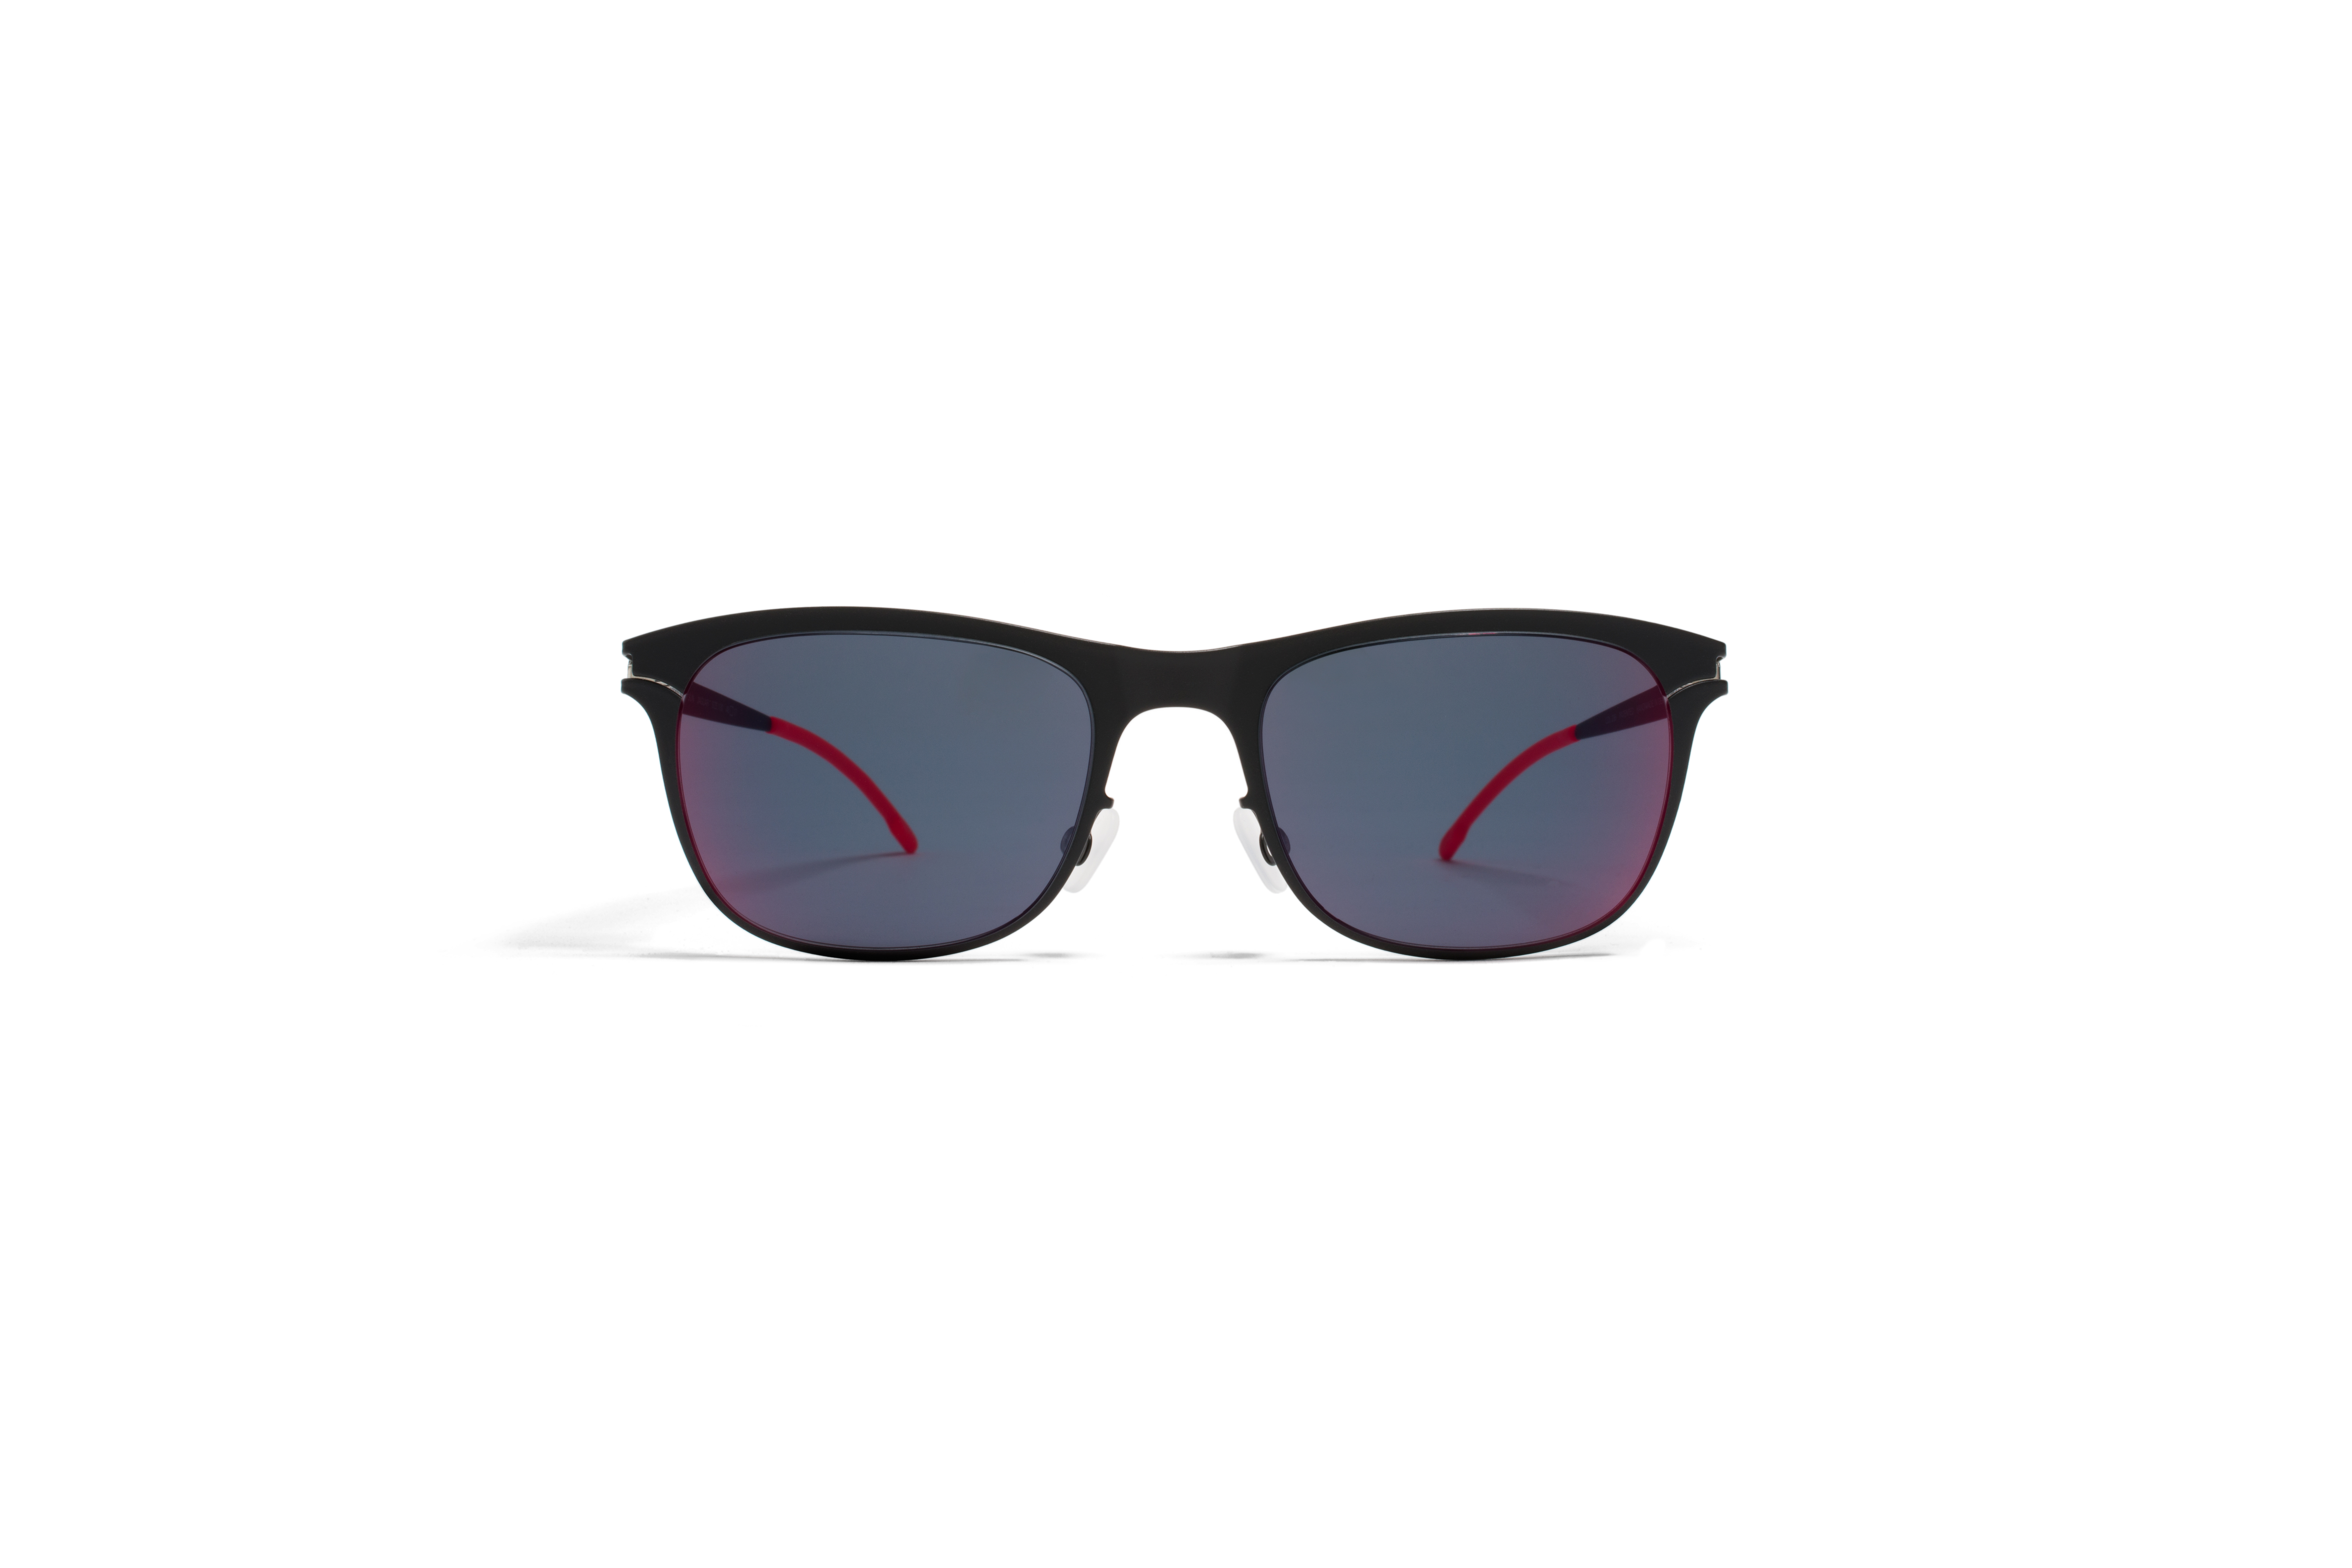 MYKITA First Sun Jaguar R1 Black Scarlet Flash